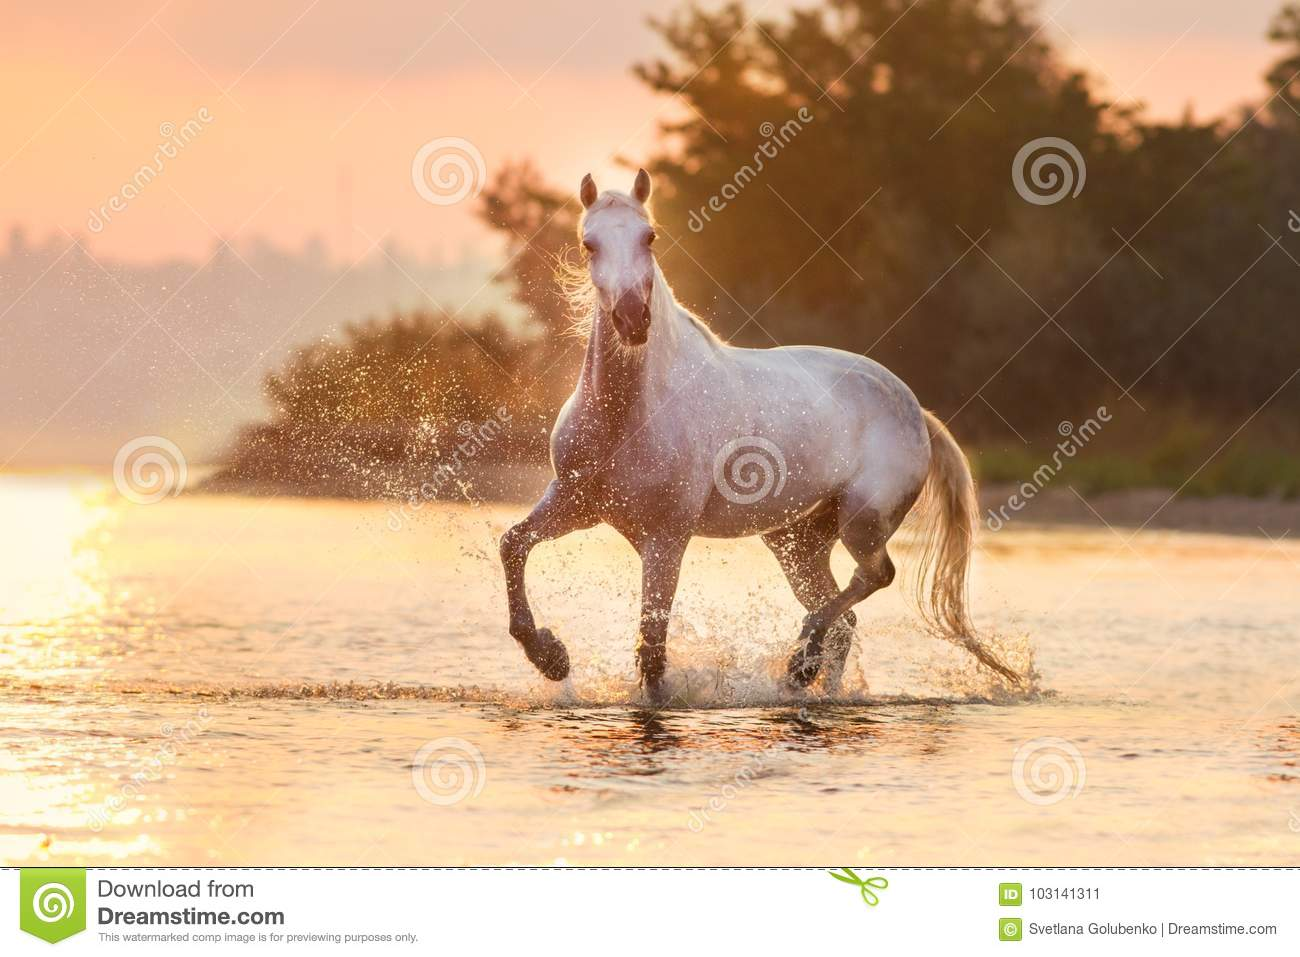 Wit $c-andalusisch paard in water